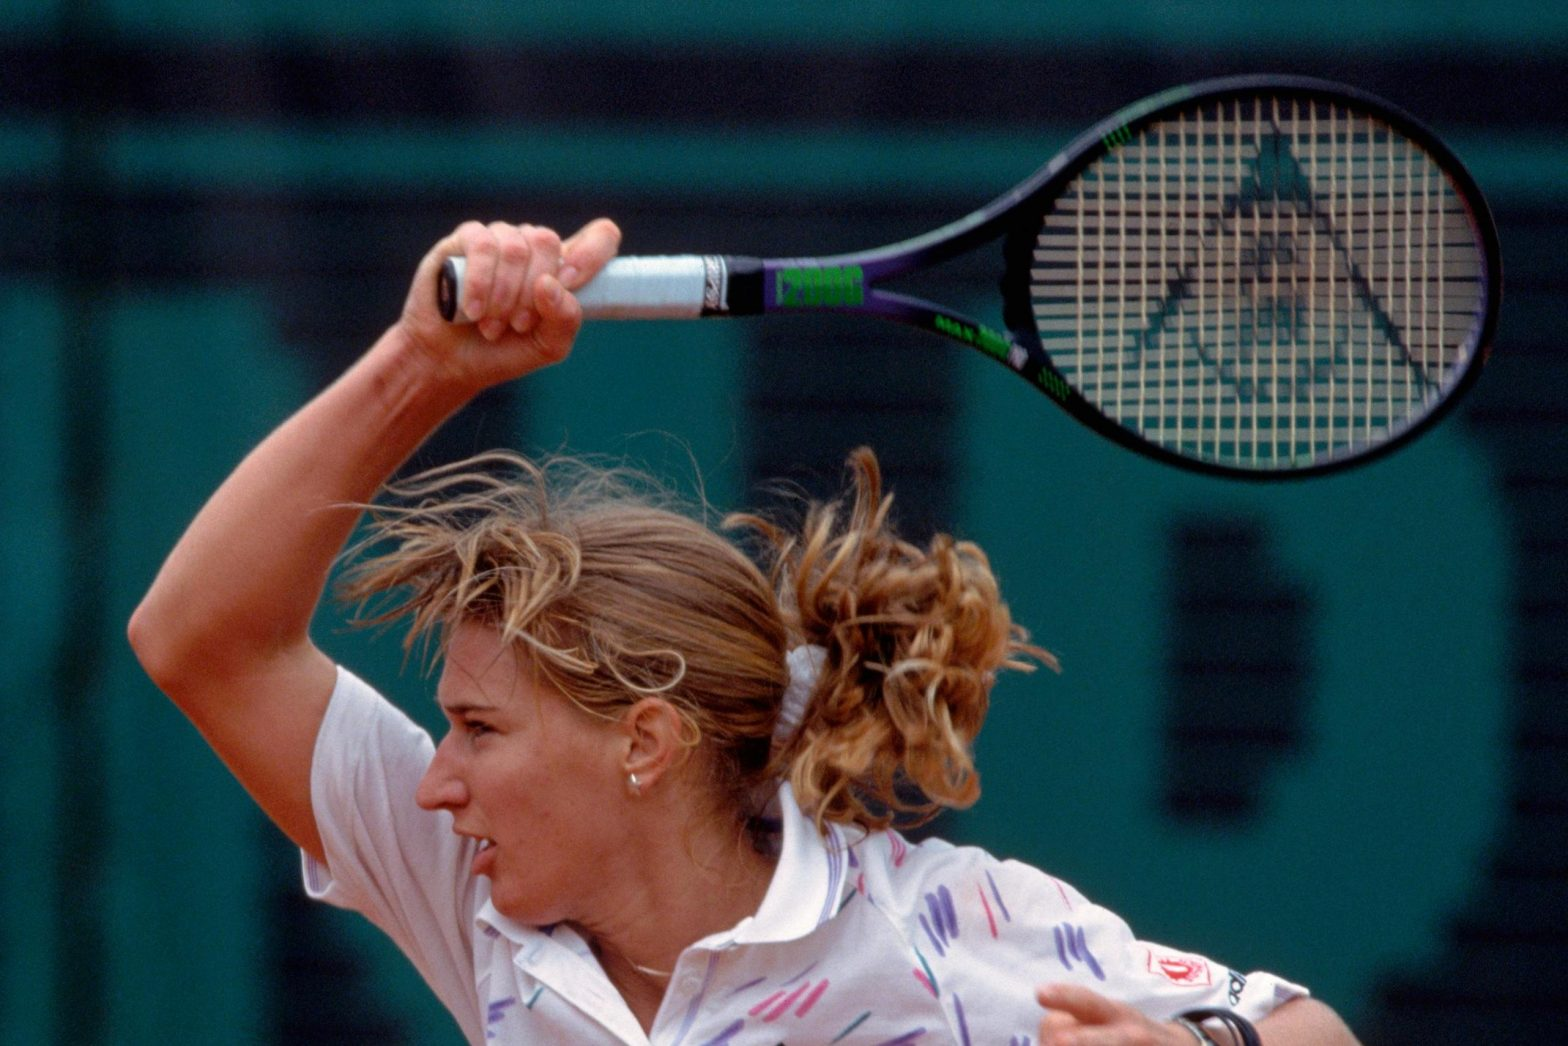 Steffi Graf tennis player